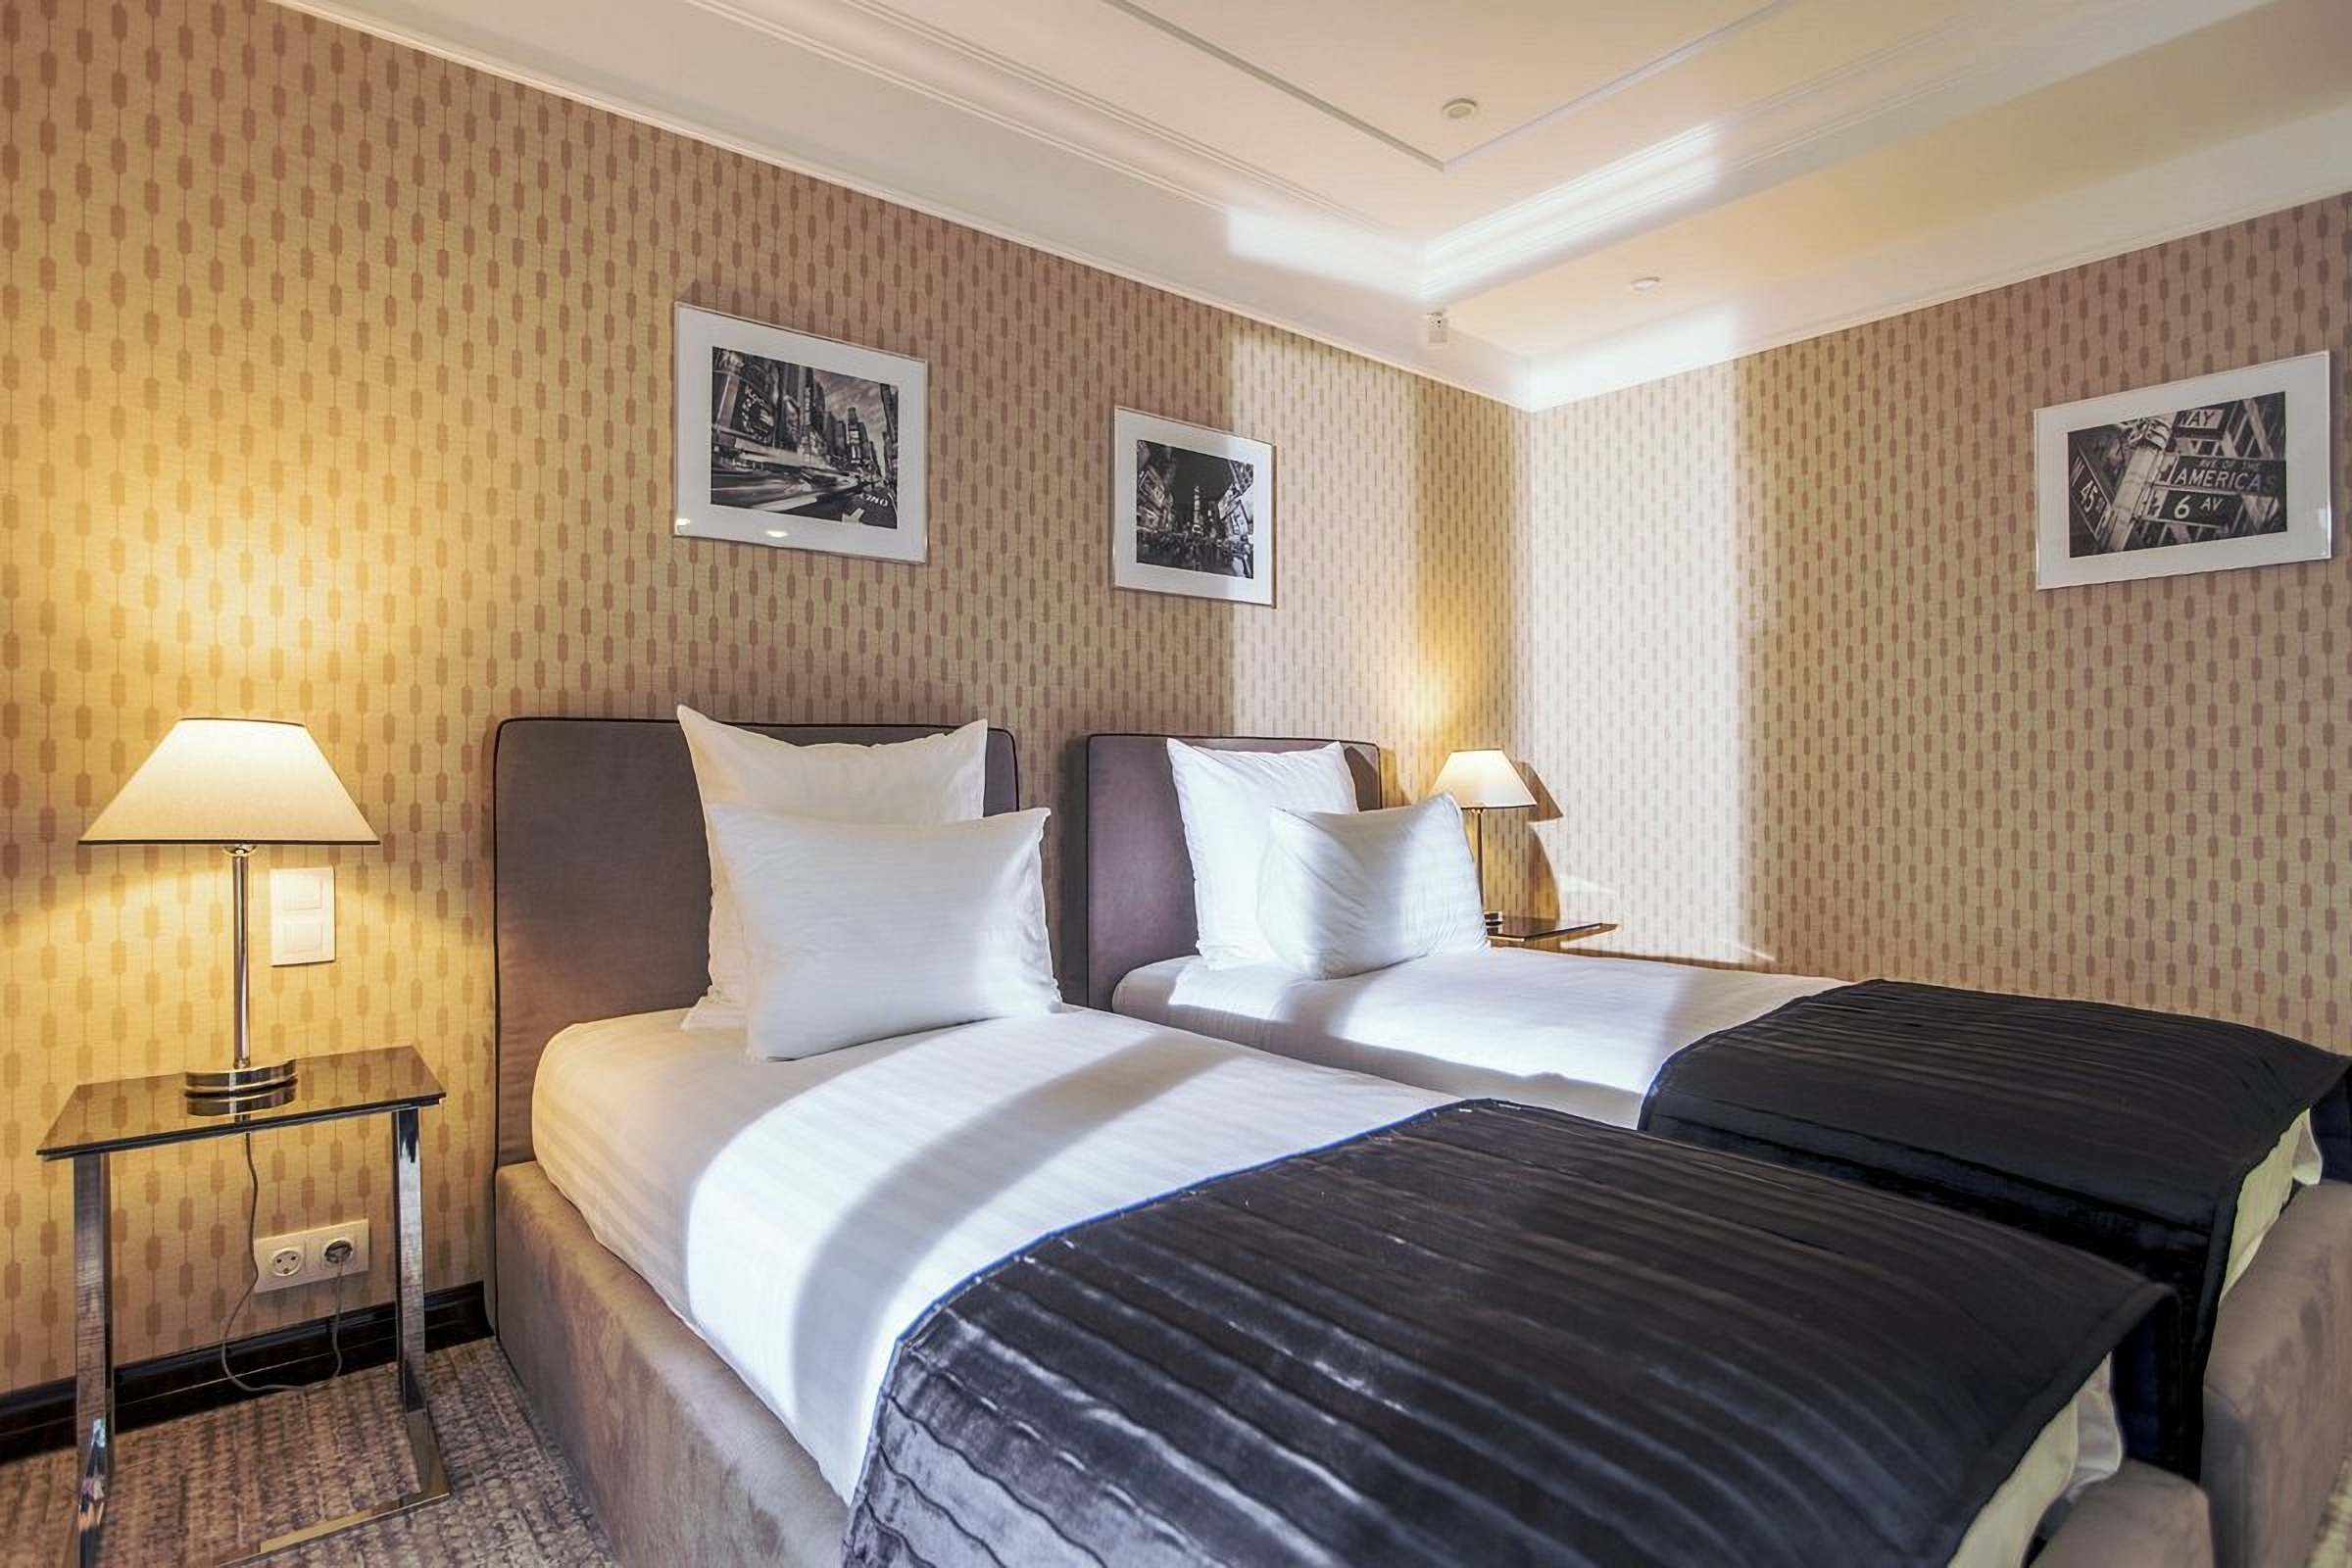 Double room in the Wall Street Hotel Odessa